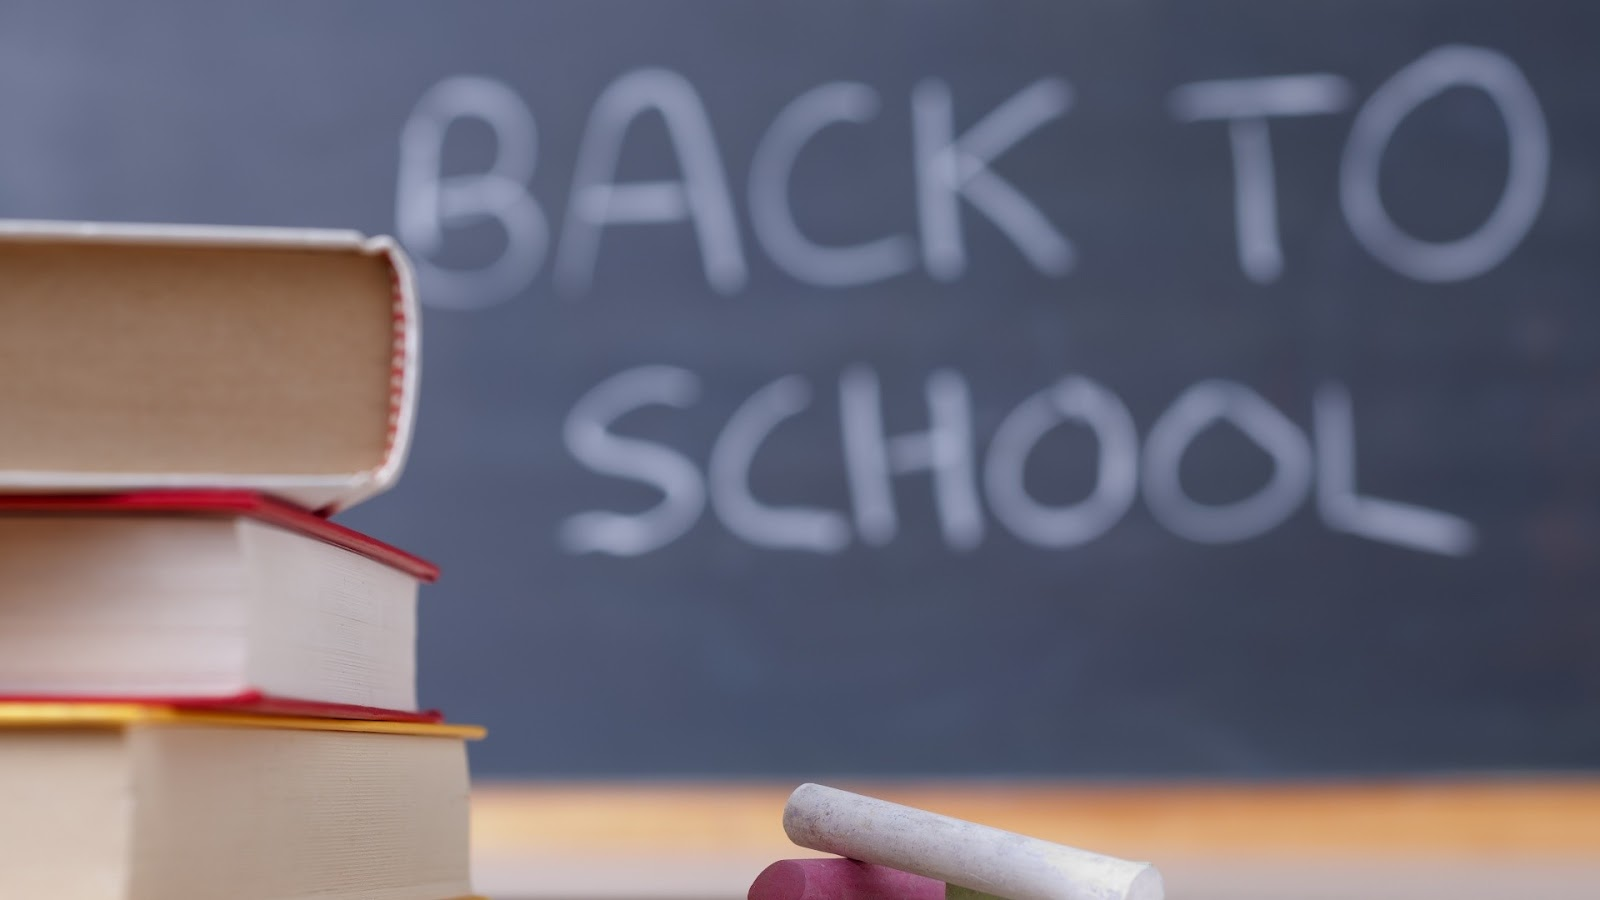 Wallpapers and pictures Back to school wallpaper 1600x900